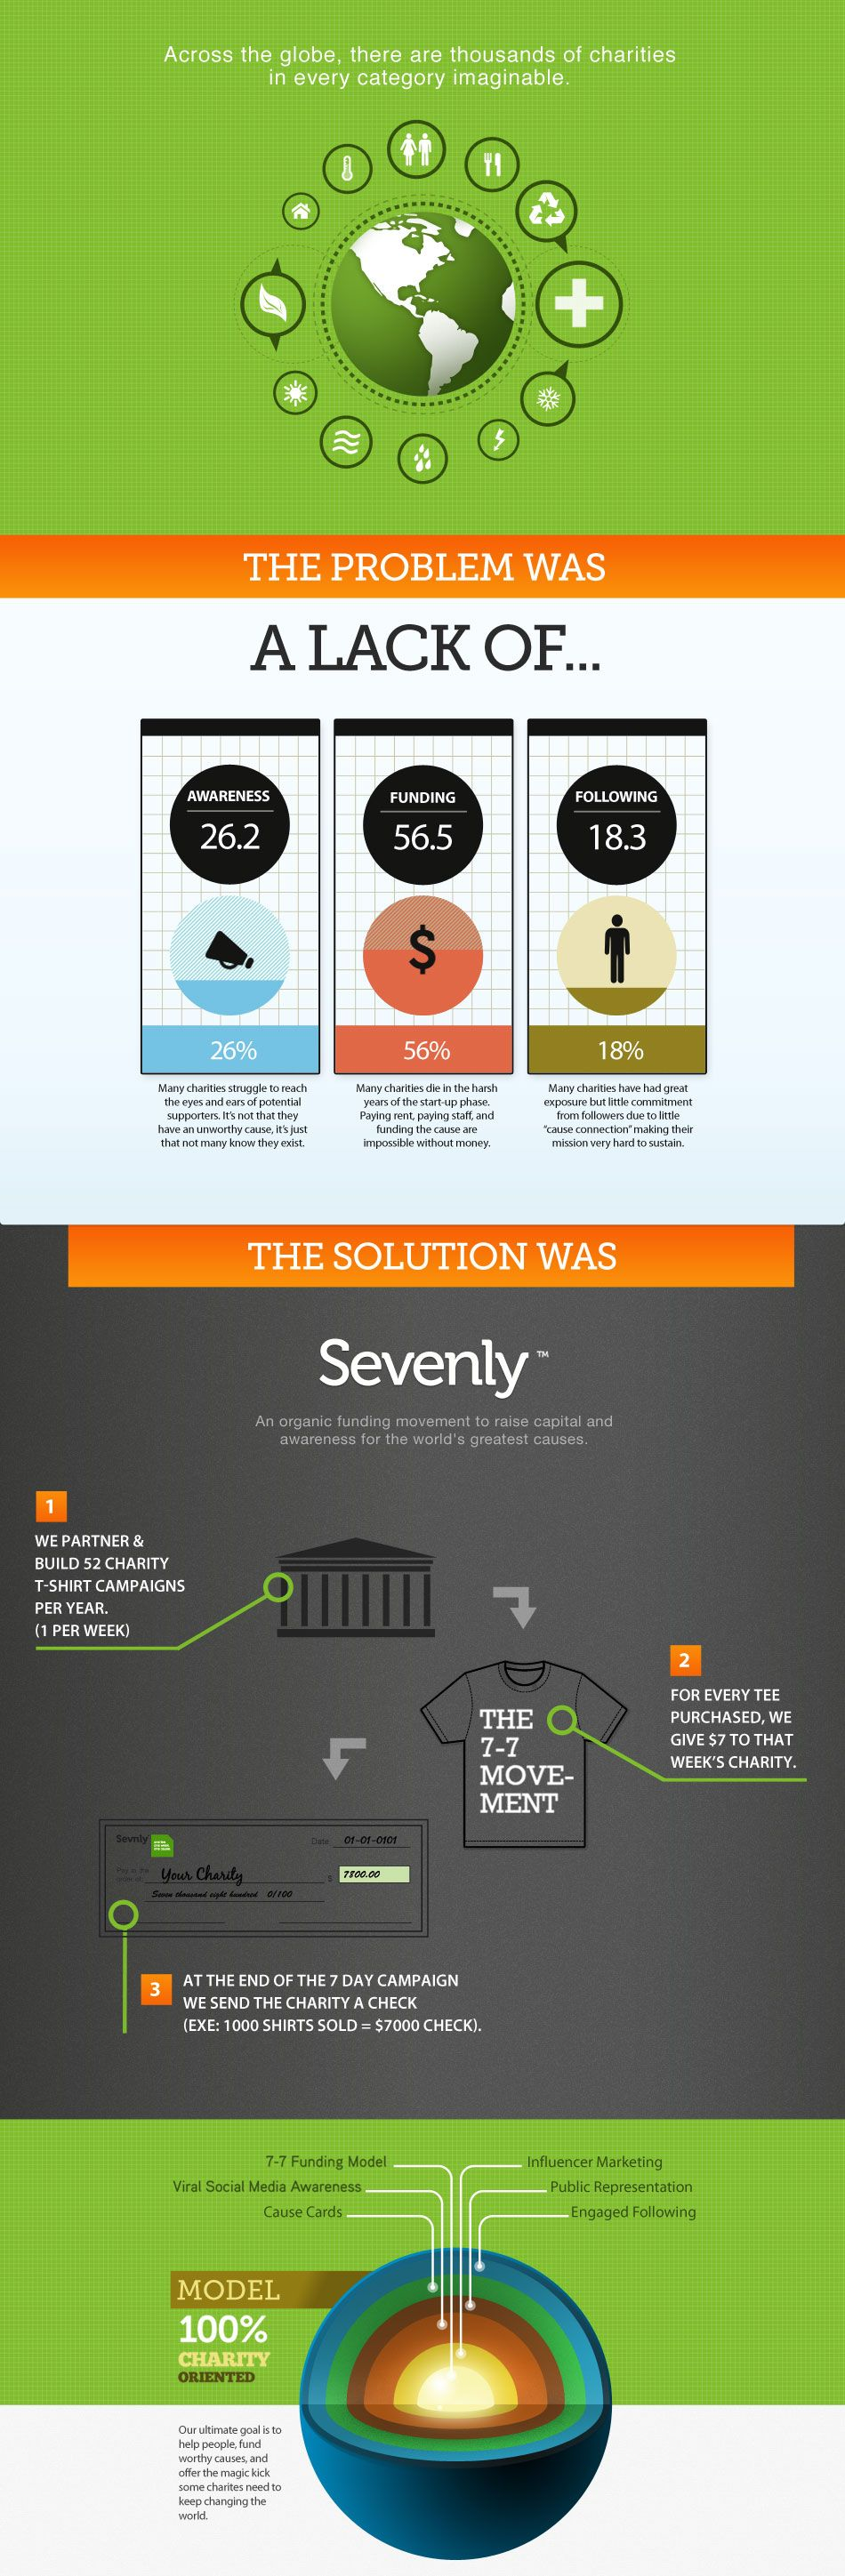 @Sevenly does a great job of focusing on the 7 causes of poverty.